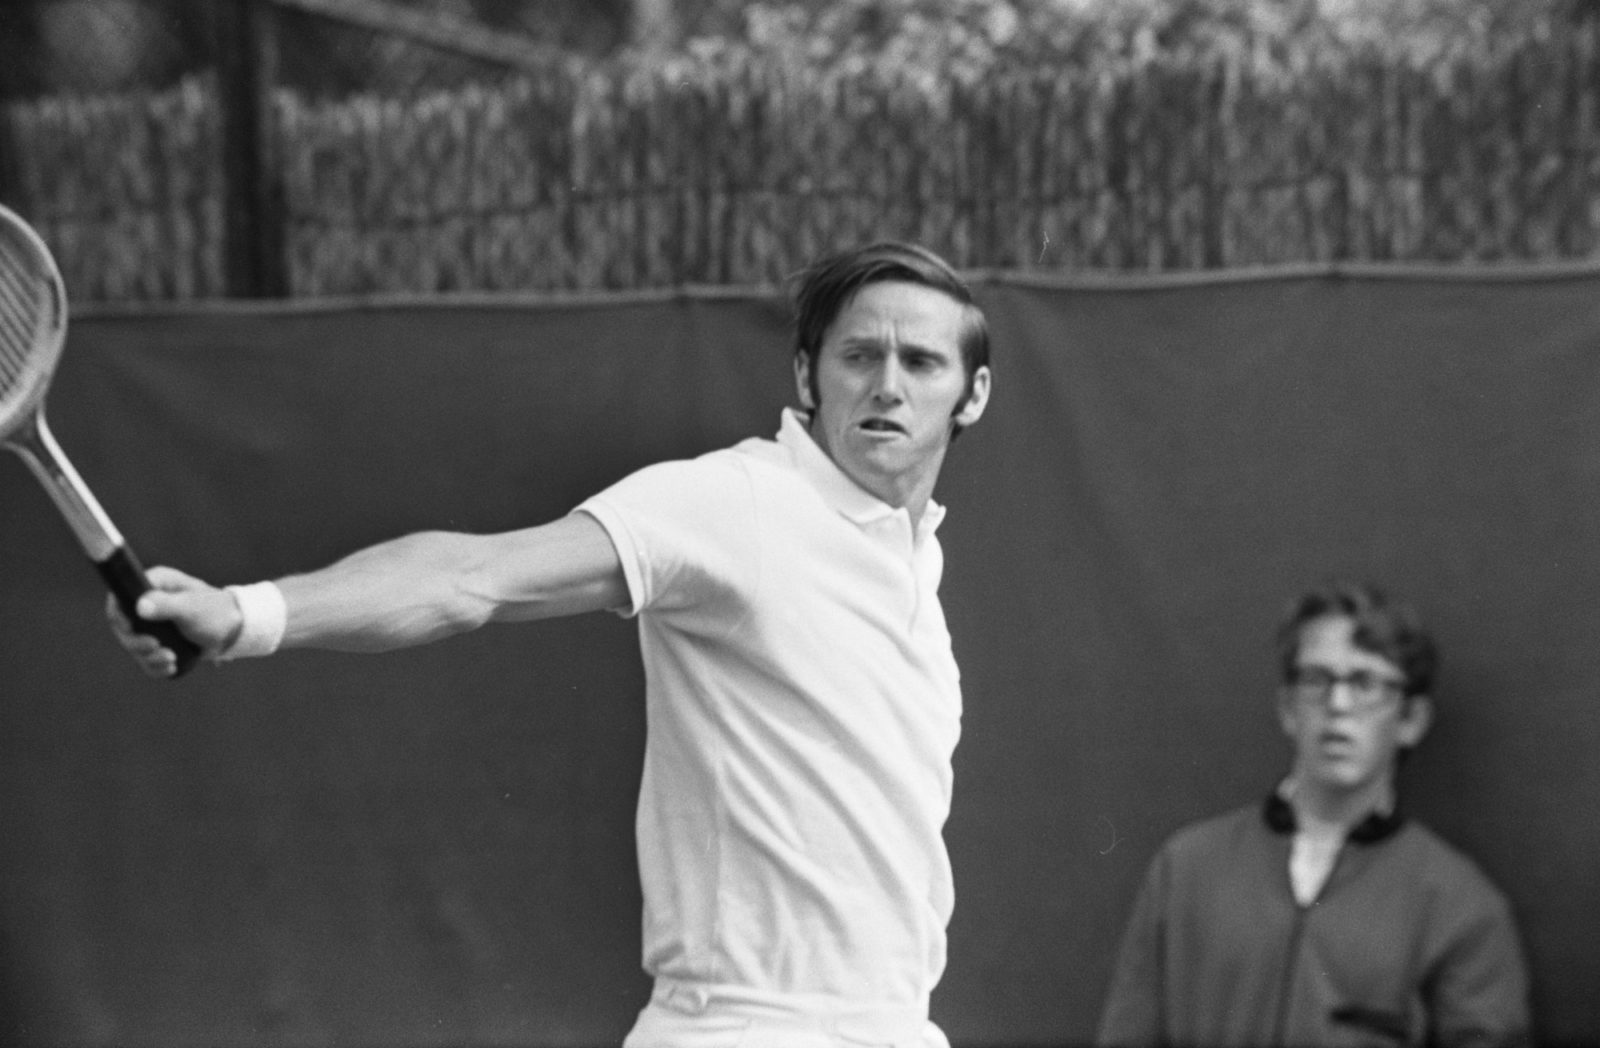 Roy Emerson, now in his 80s, is one of Australia's best ever tennis players.